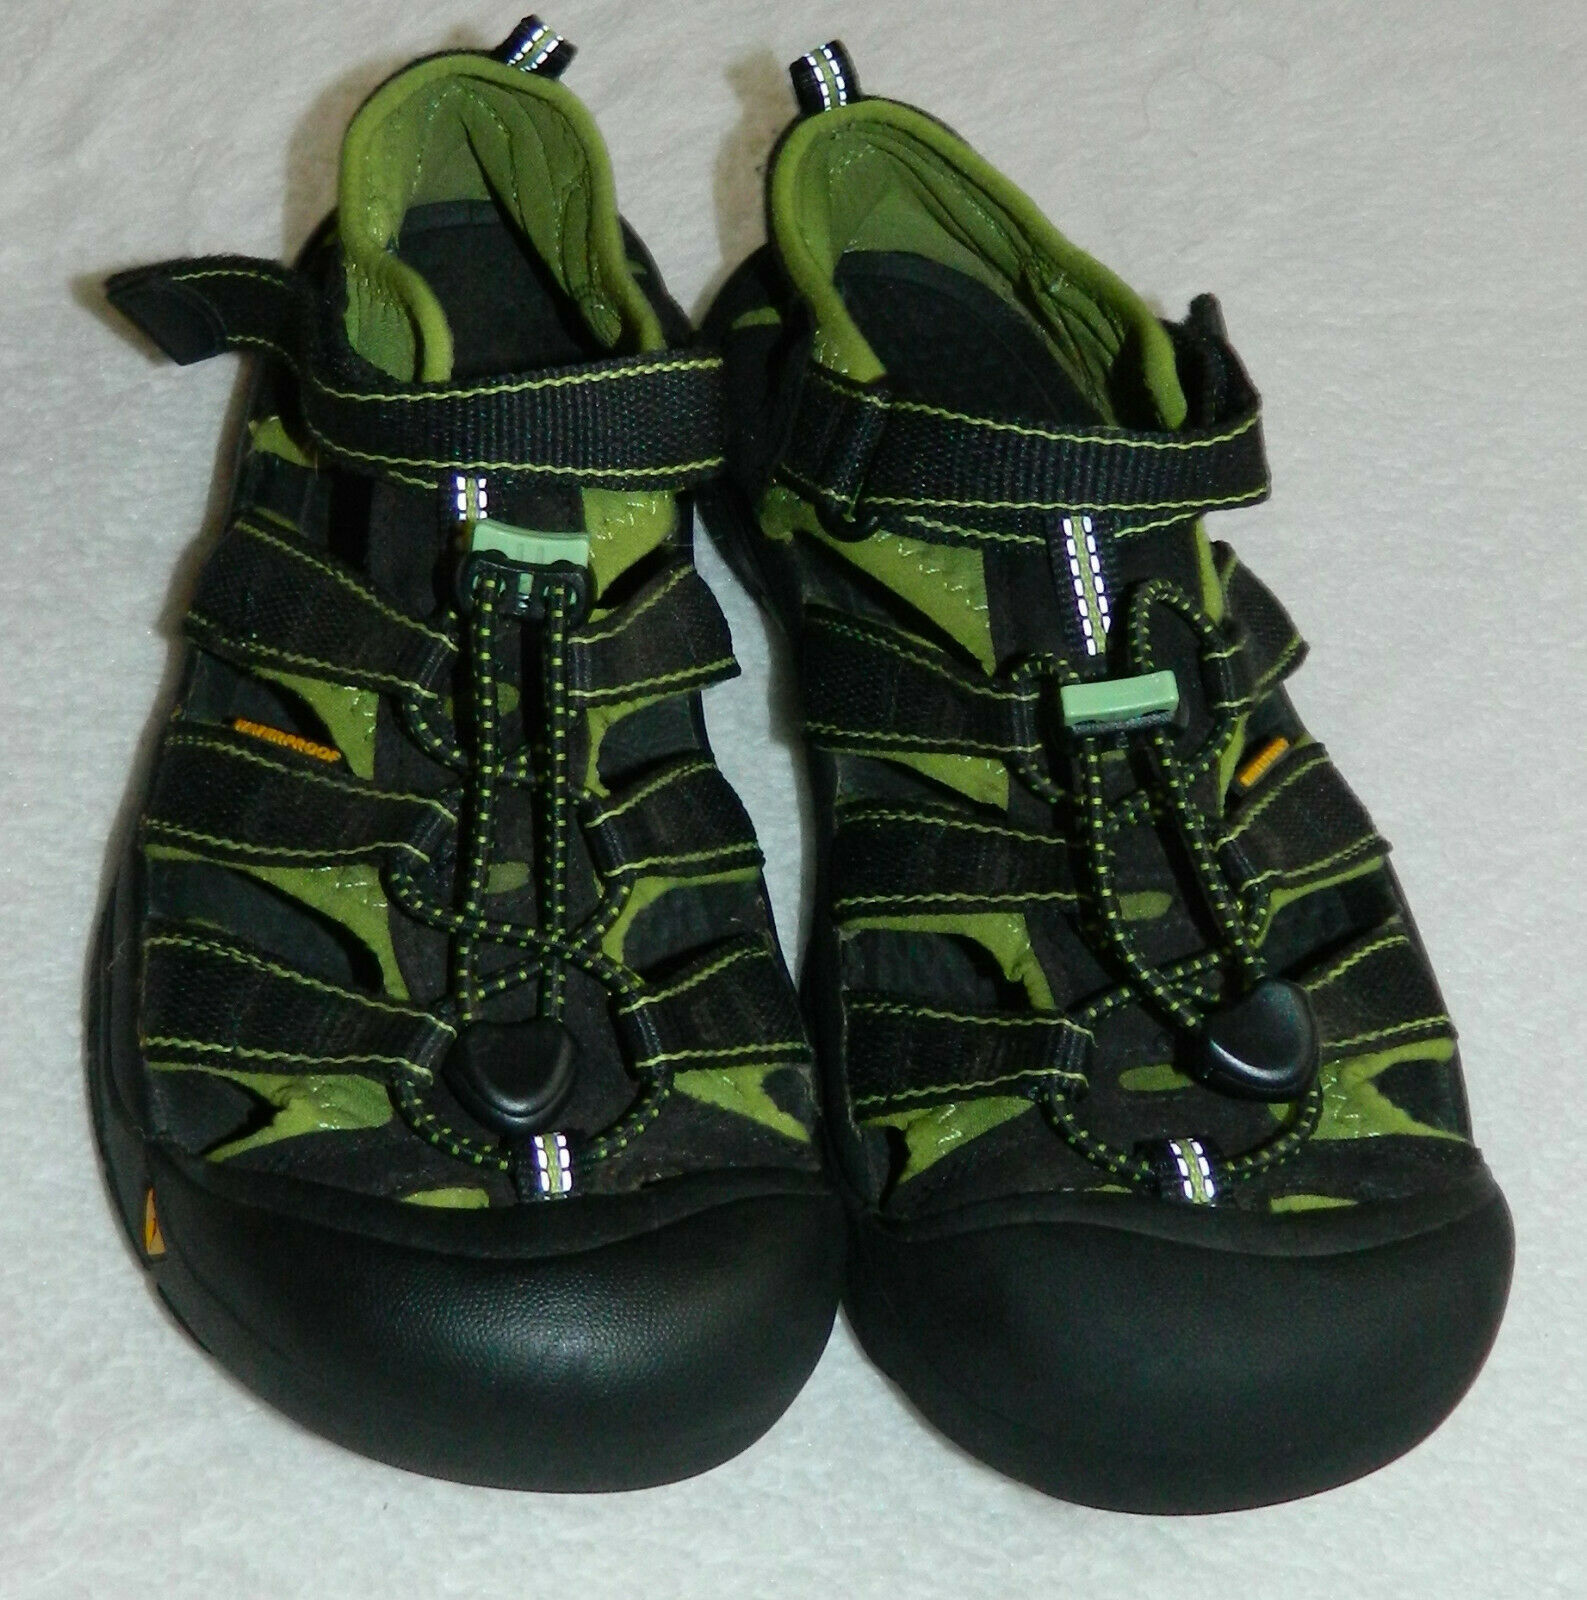 Keen Newport Sport Sandals Shoes Womens 6 Waterproof Hiking Outdoors Green   r